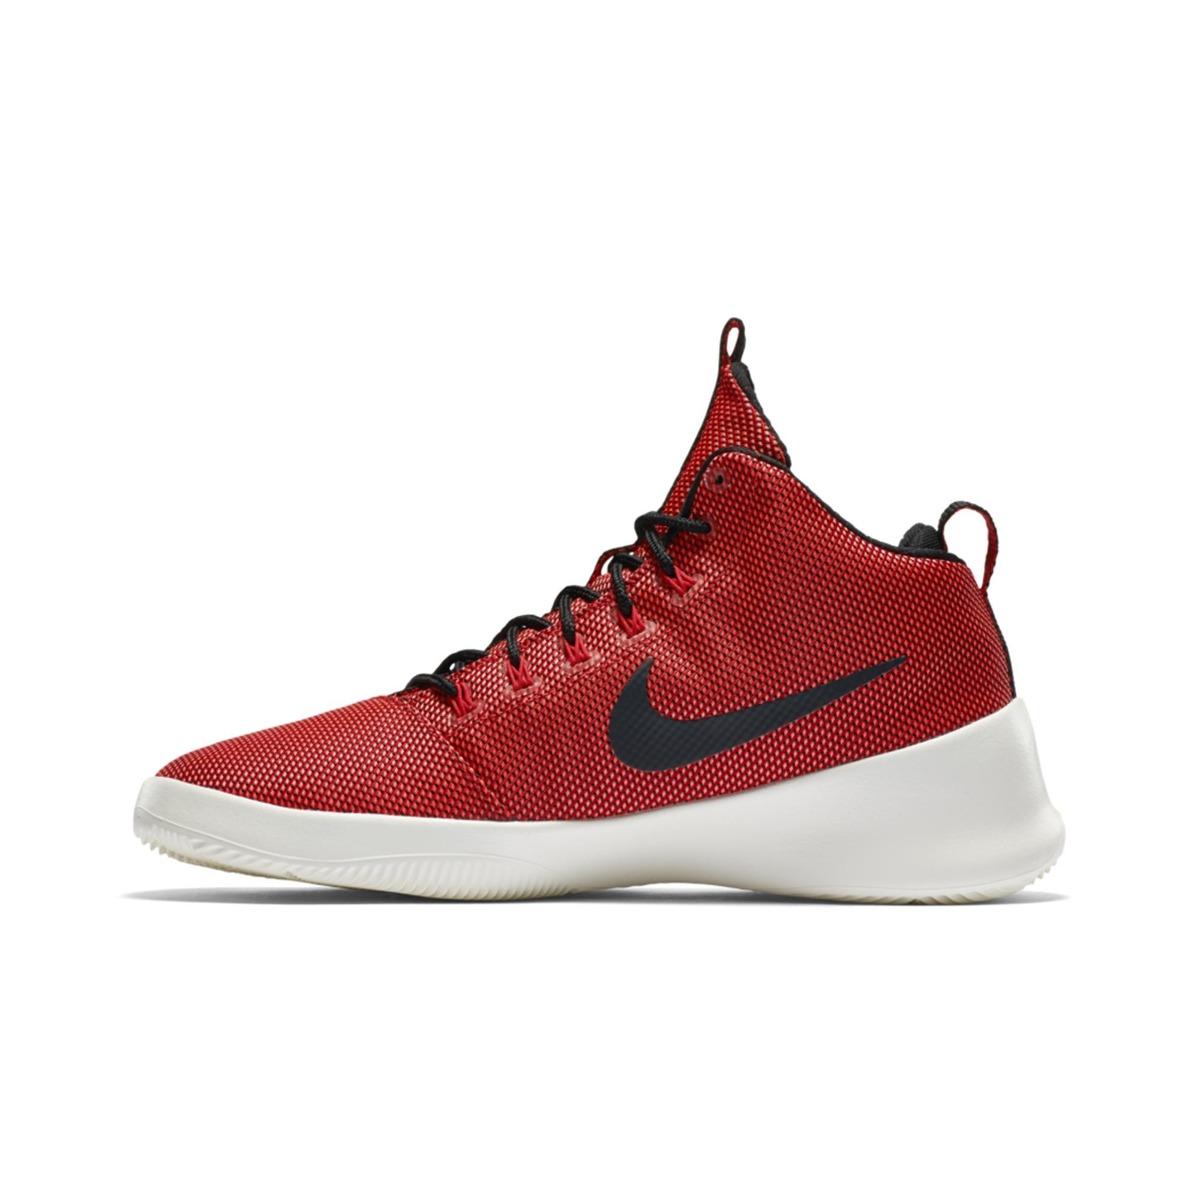 uk availability cb31c 57746 ... nike nsw hyperfresh red  42. Carregando zoom.